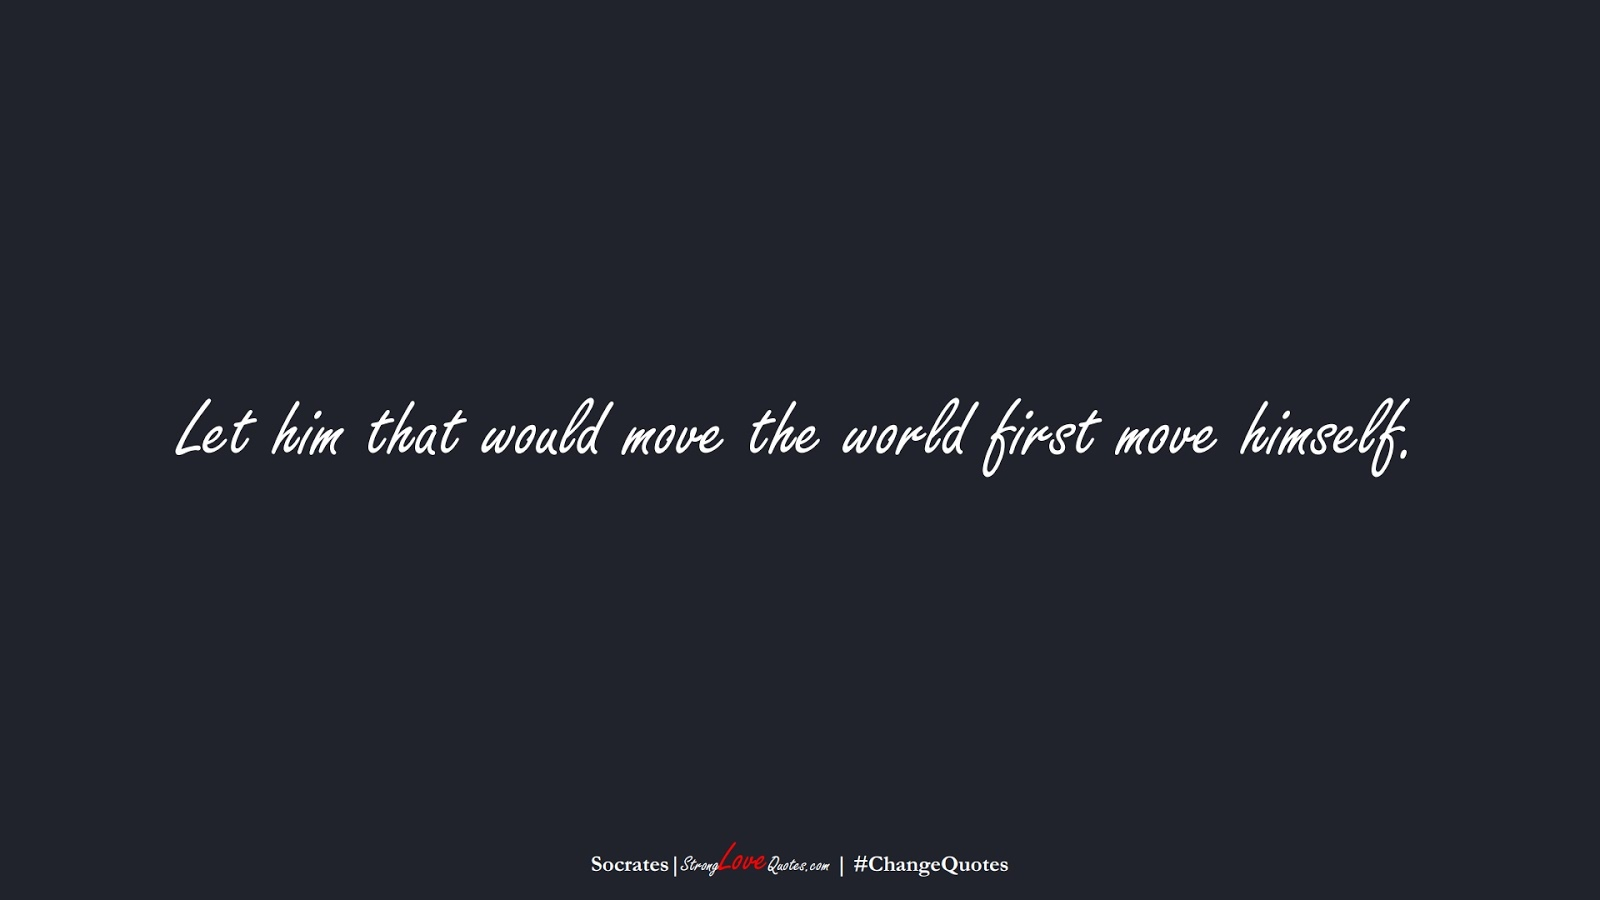 Let him that would move the world first move himself. (Socrates);  #ChangeQuotes